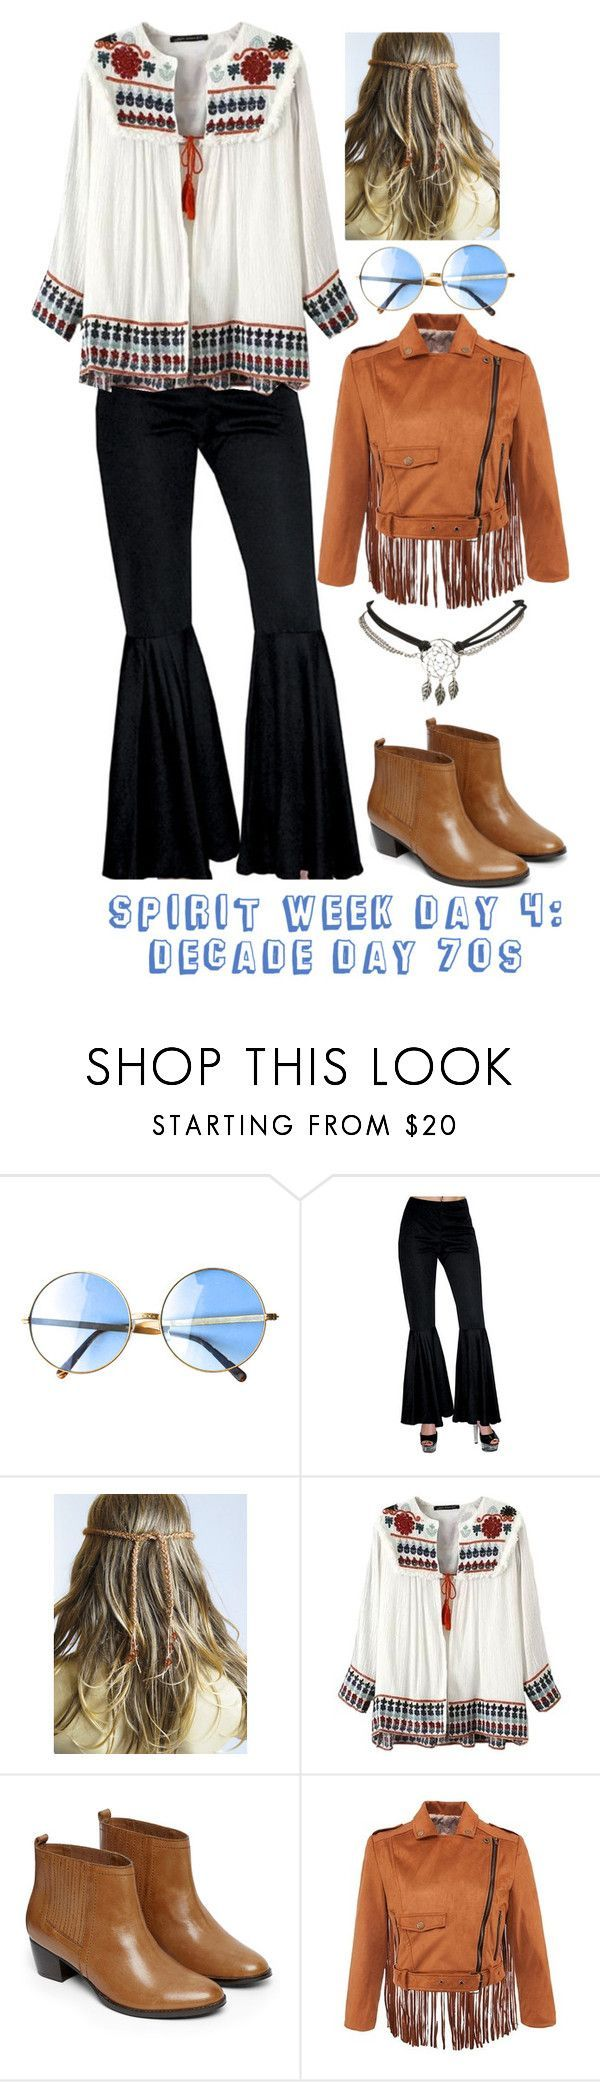 Spirit week day 4: Decade Day 70s by nialls-princess-megan on Polyvore featuring... #characterdayspiritweek